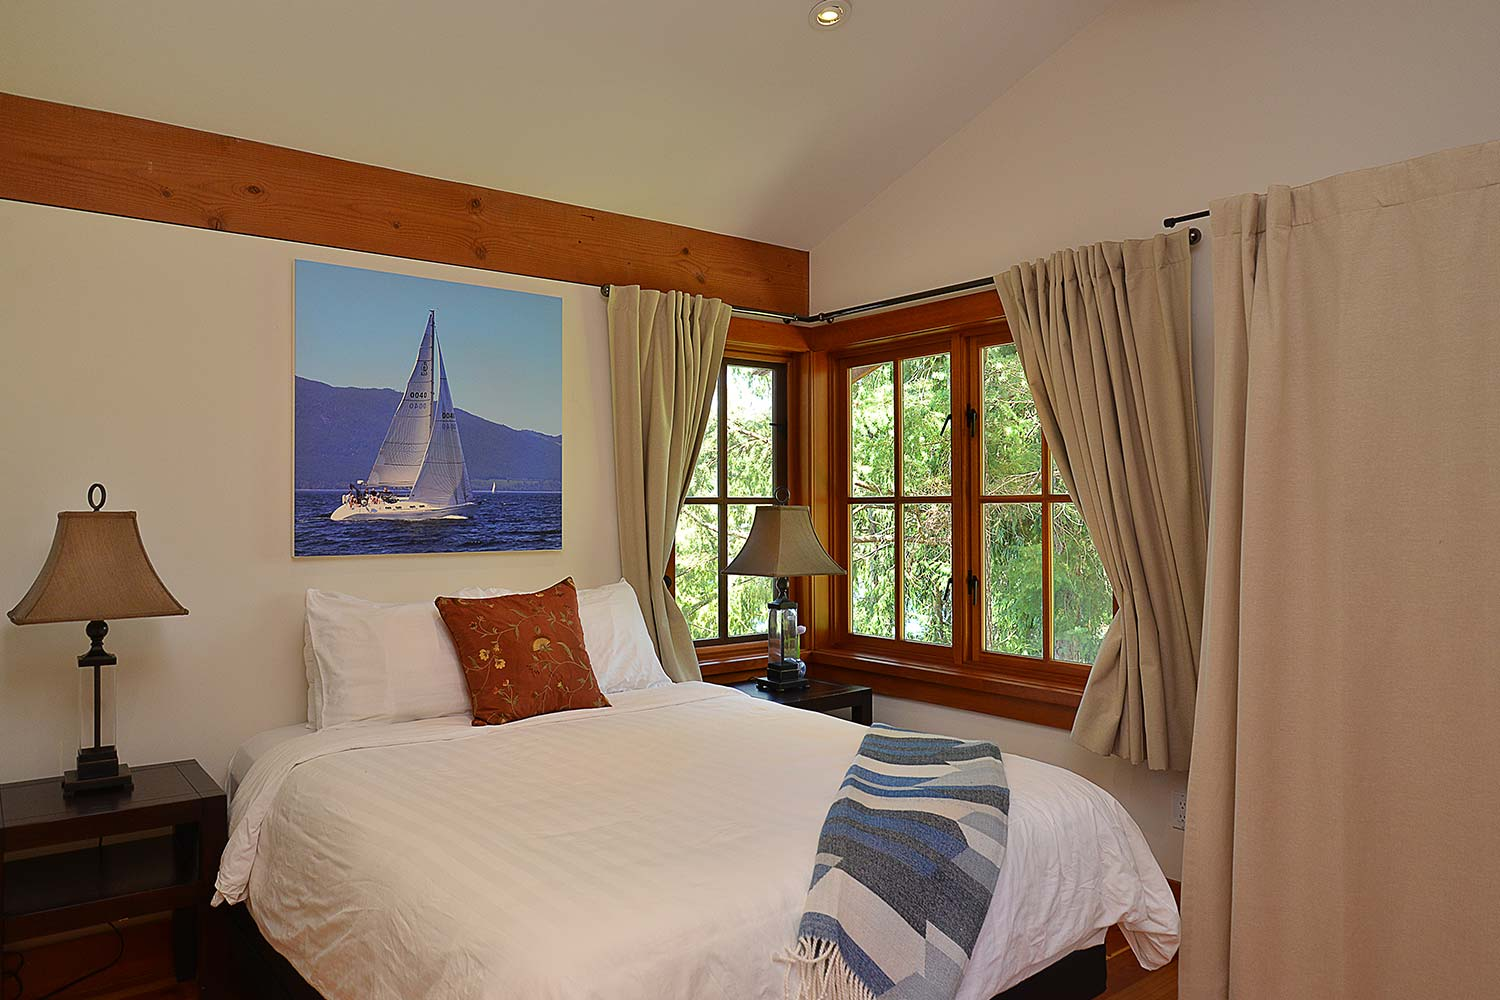 A bedroom in this large house rental has artwork of a sailboat above the bed and two bedside tables.